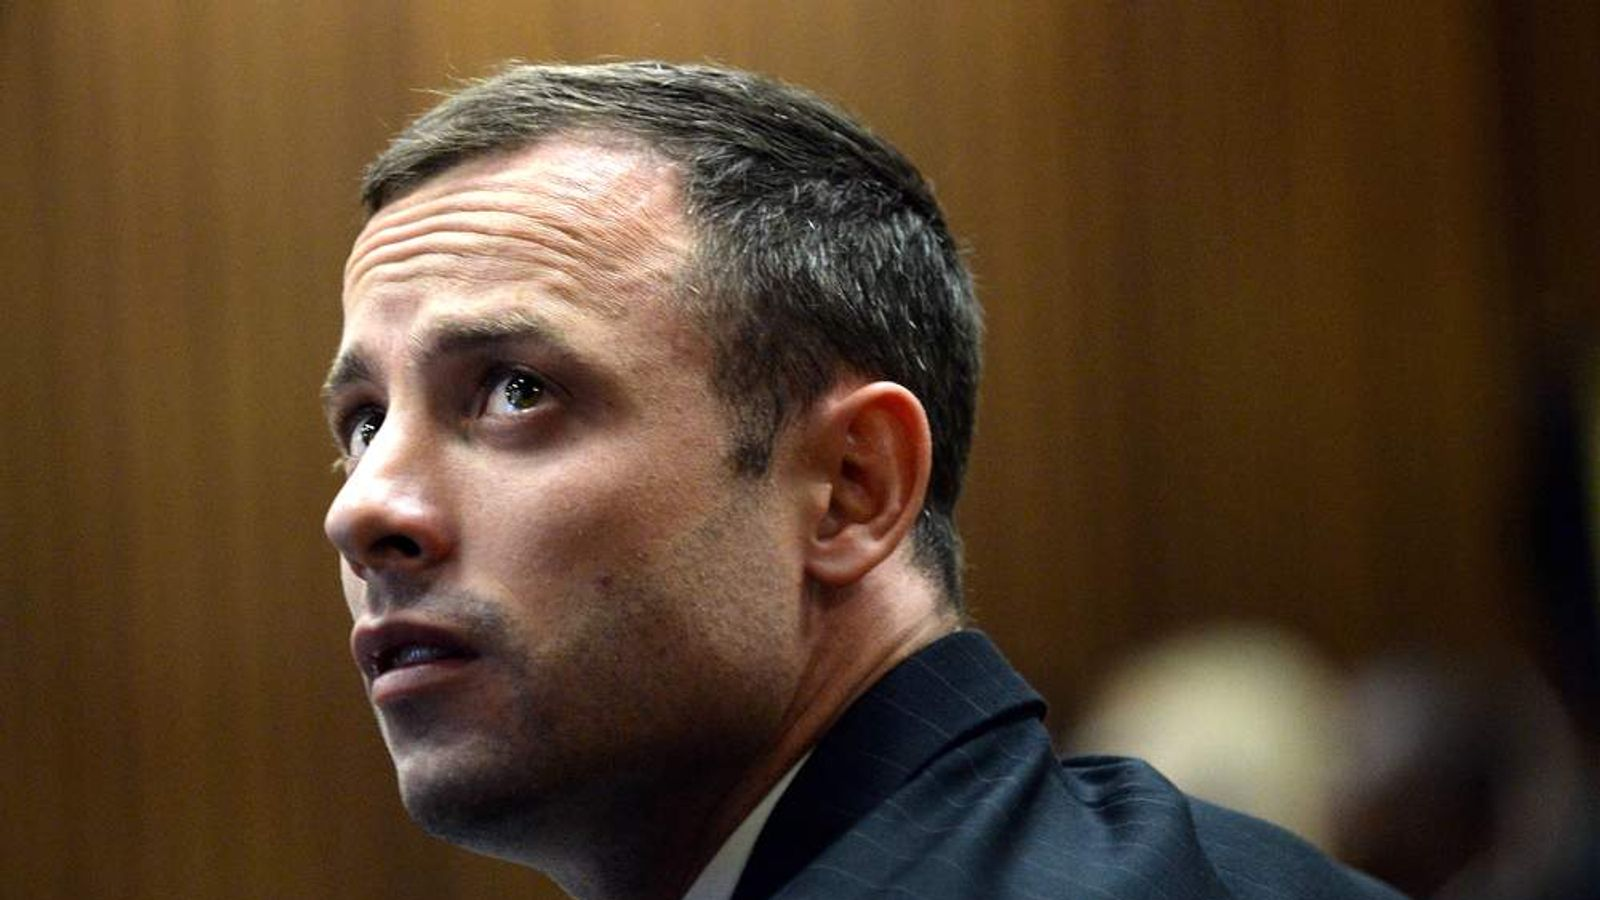 Oscar Pistorius prepares for the second day of his trial in Pretoria.